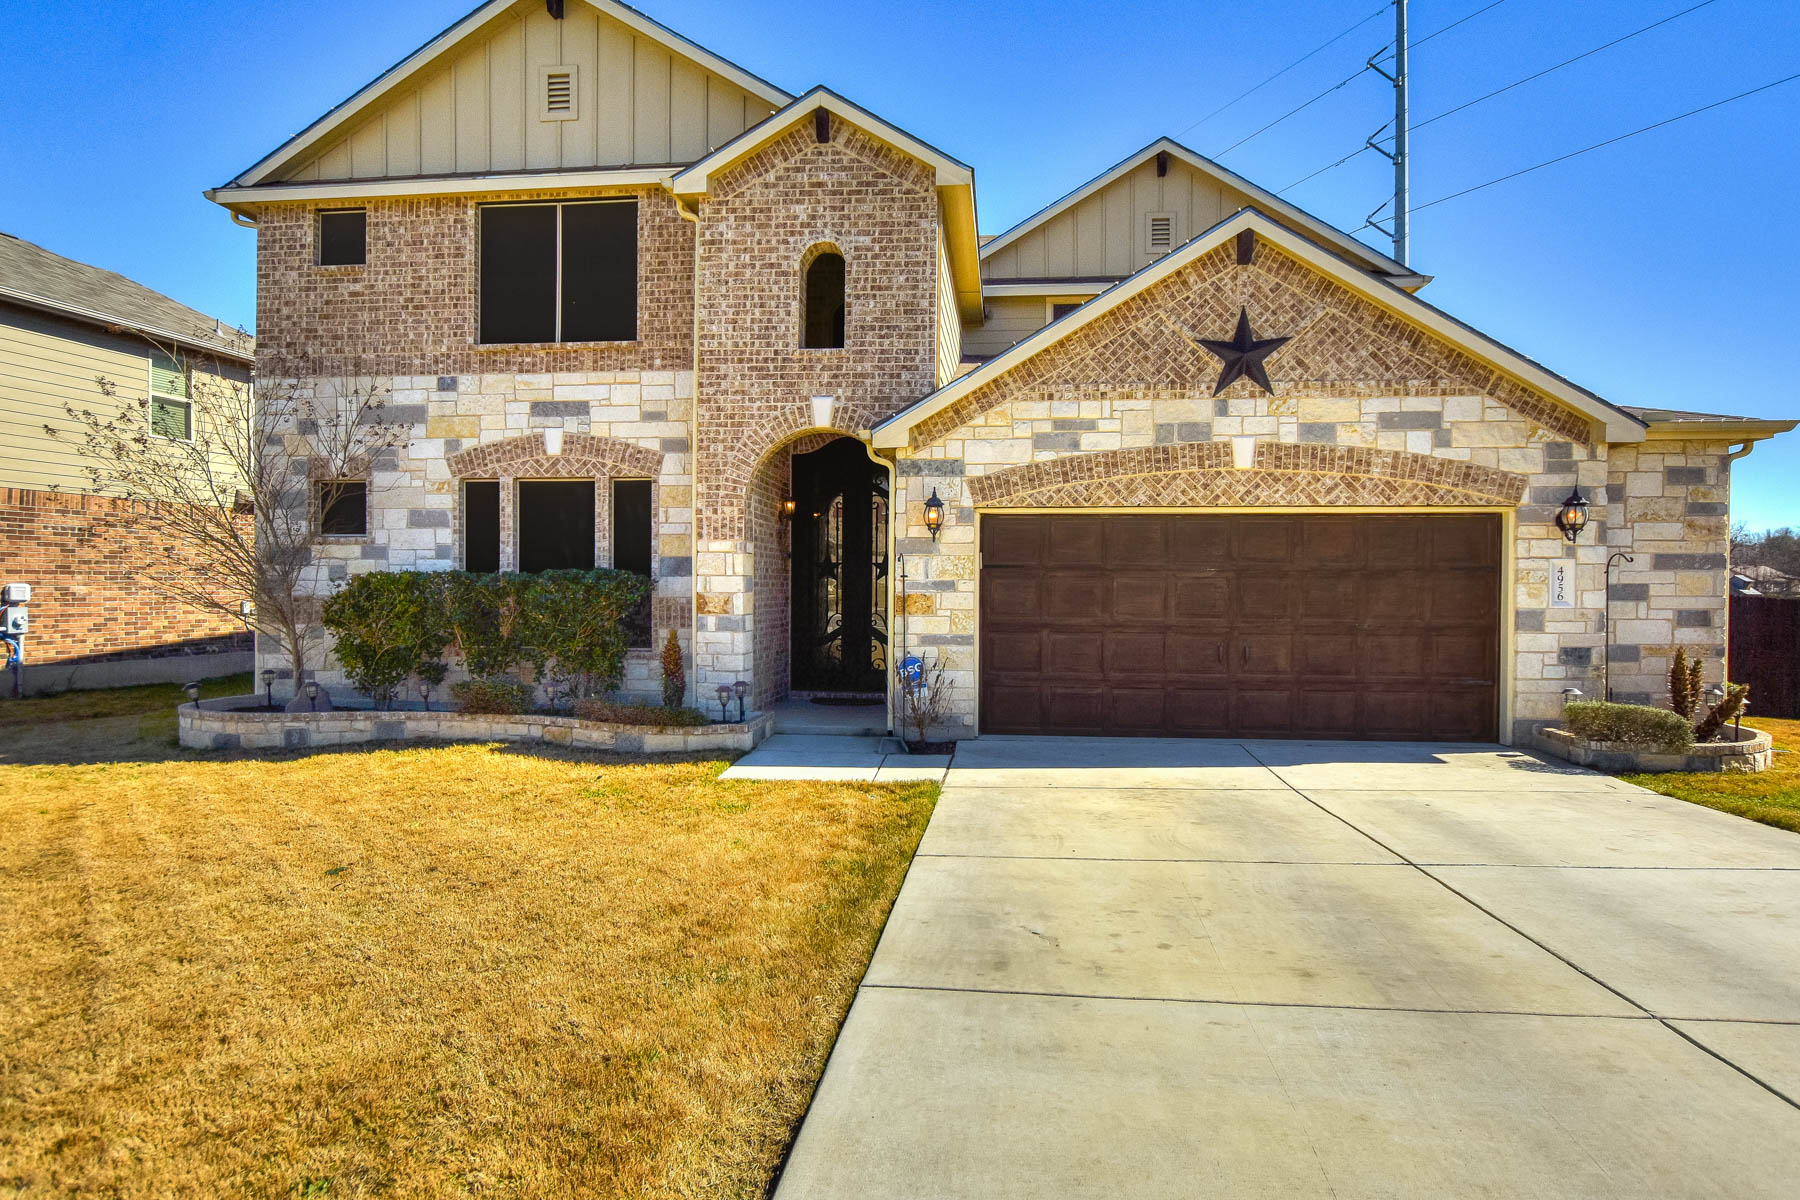 Single Family Home for Sale at Beatiful Home in Schertz 4956 Eagle Valley St Cibolo, Texas 78108 United States